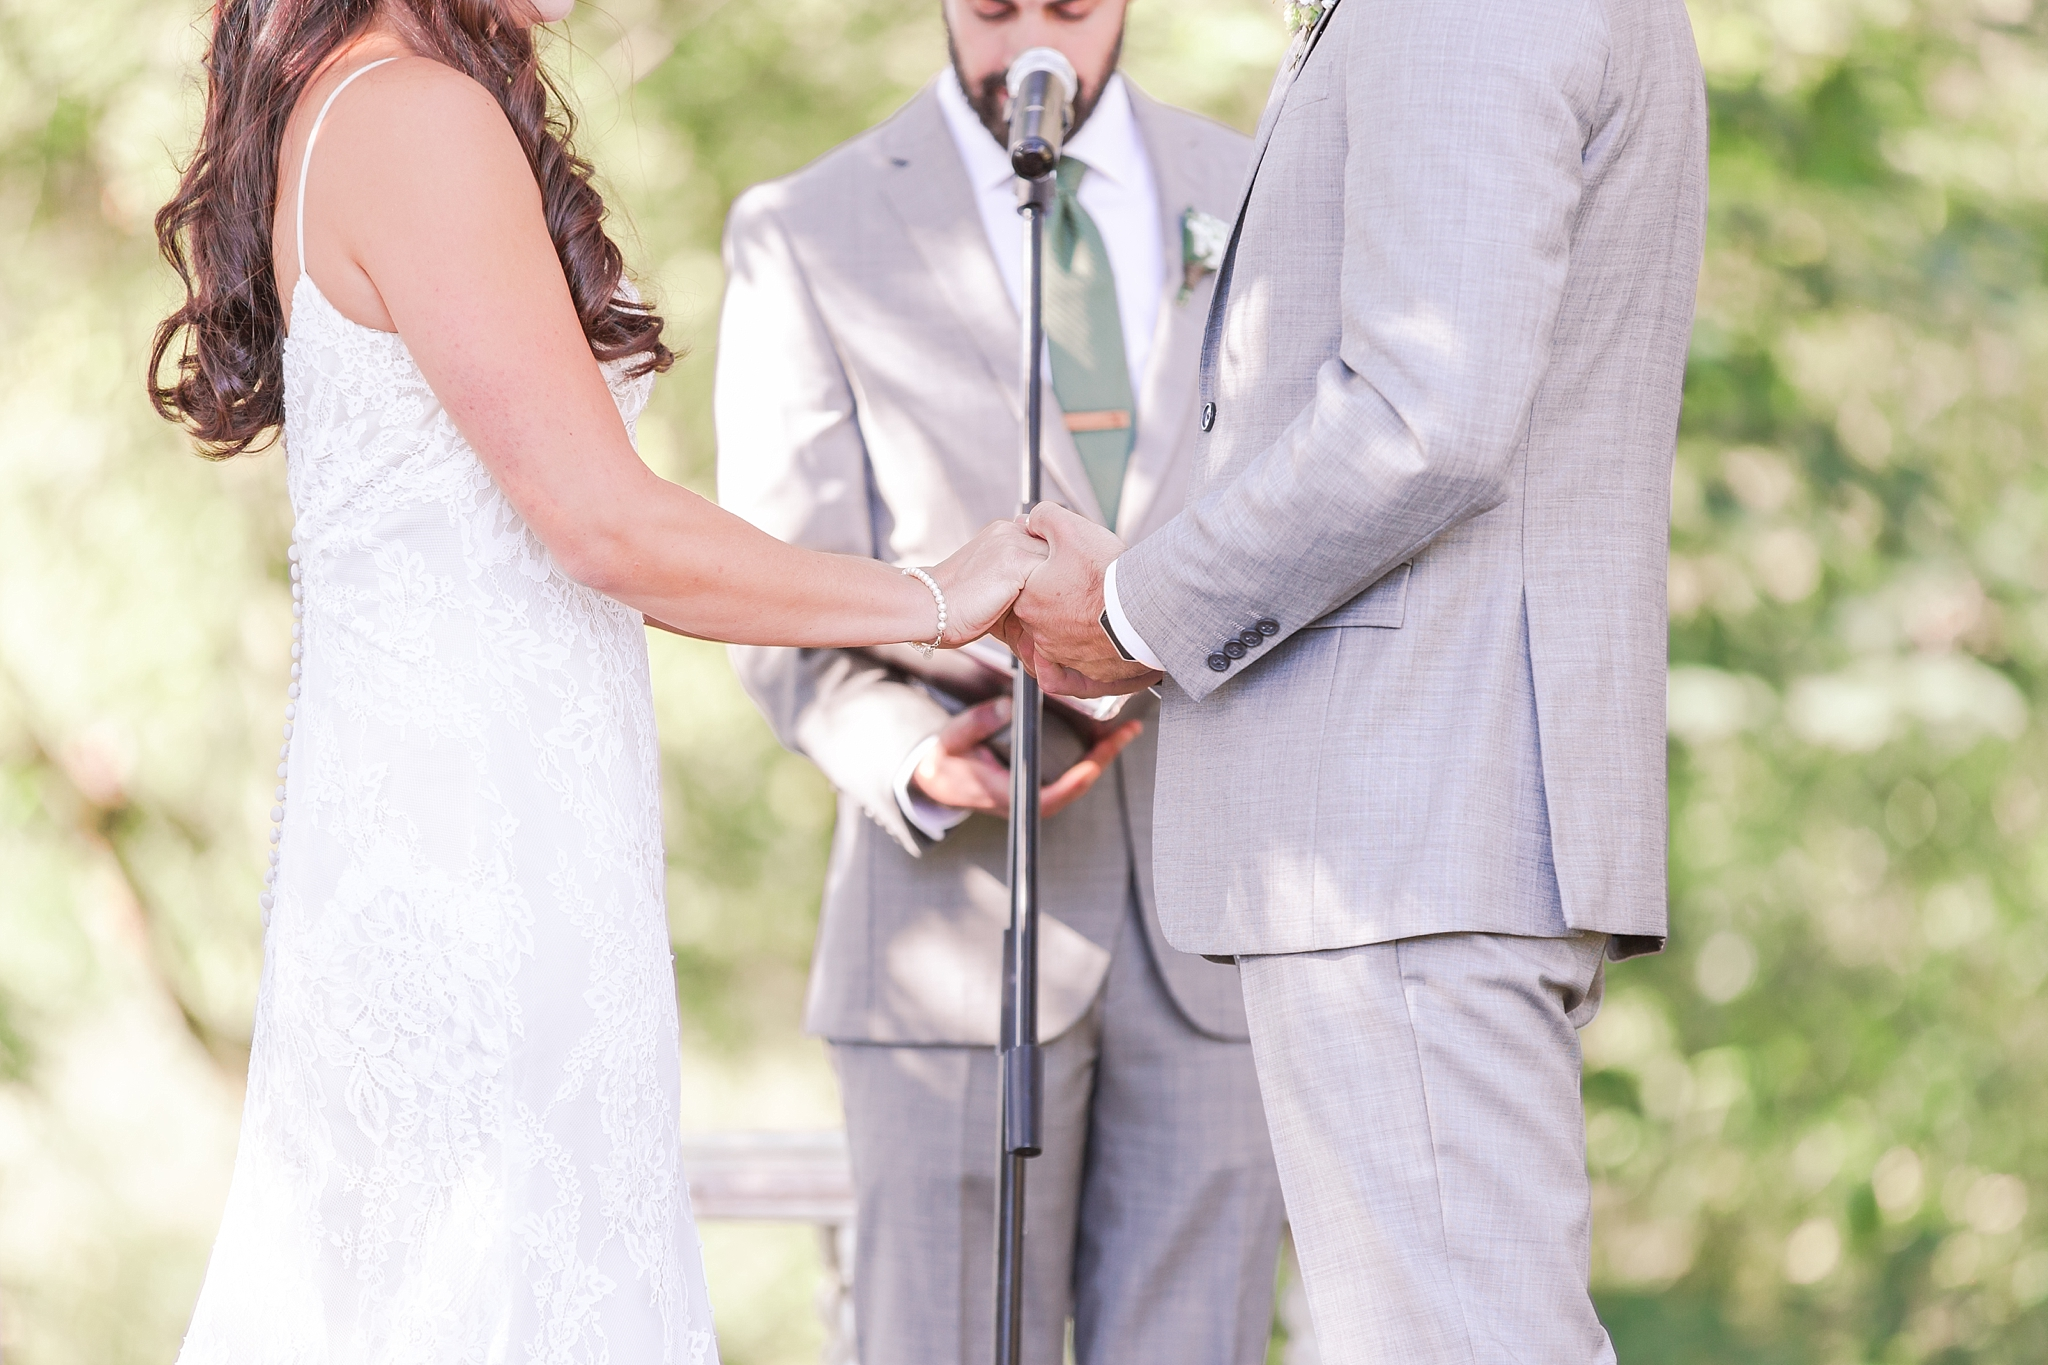 natural-rustic-wedding-photos-at-frutig-farms-the-valley-in-ann-arbor-michigan-by-courtney-carolyn-photography_0066.jpg